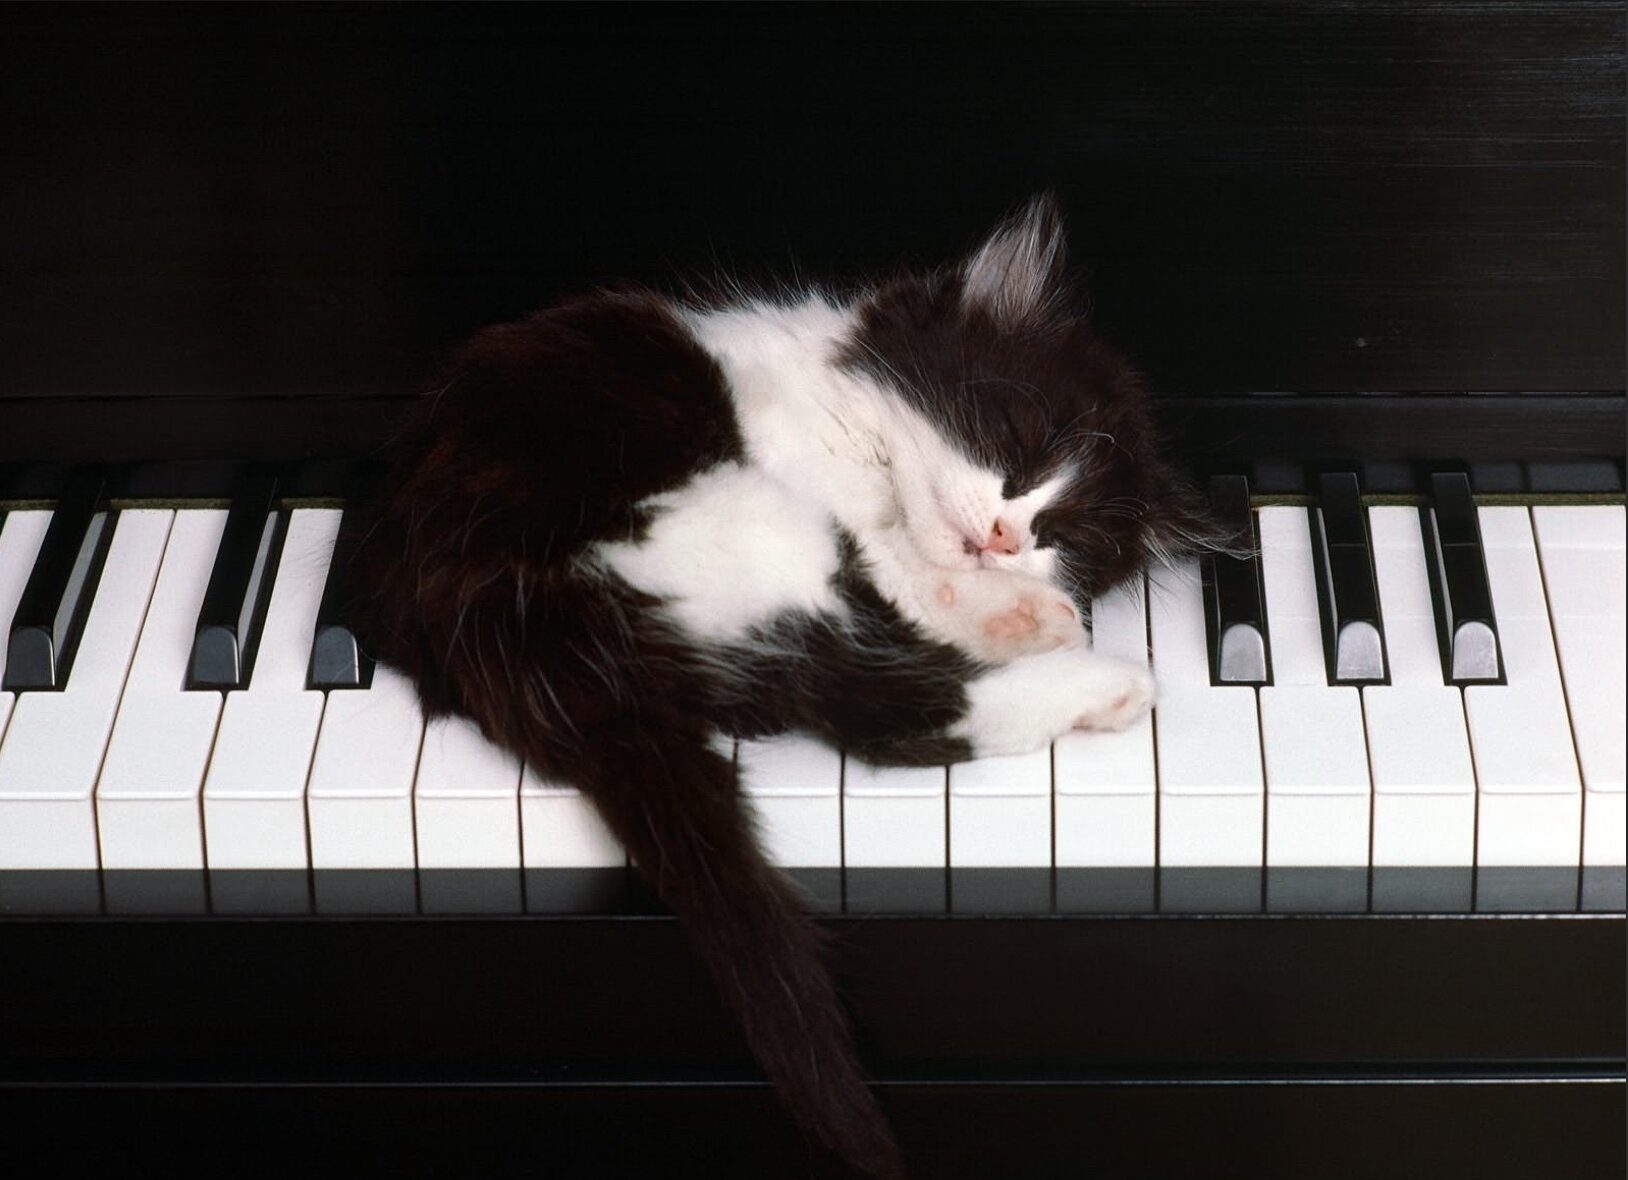 Comment-choisir-son-piano